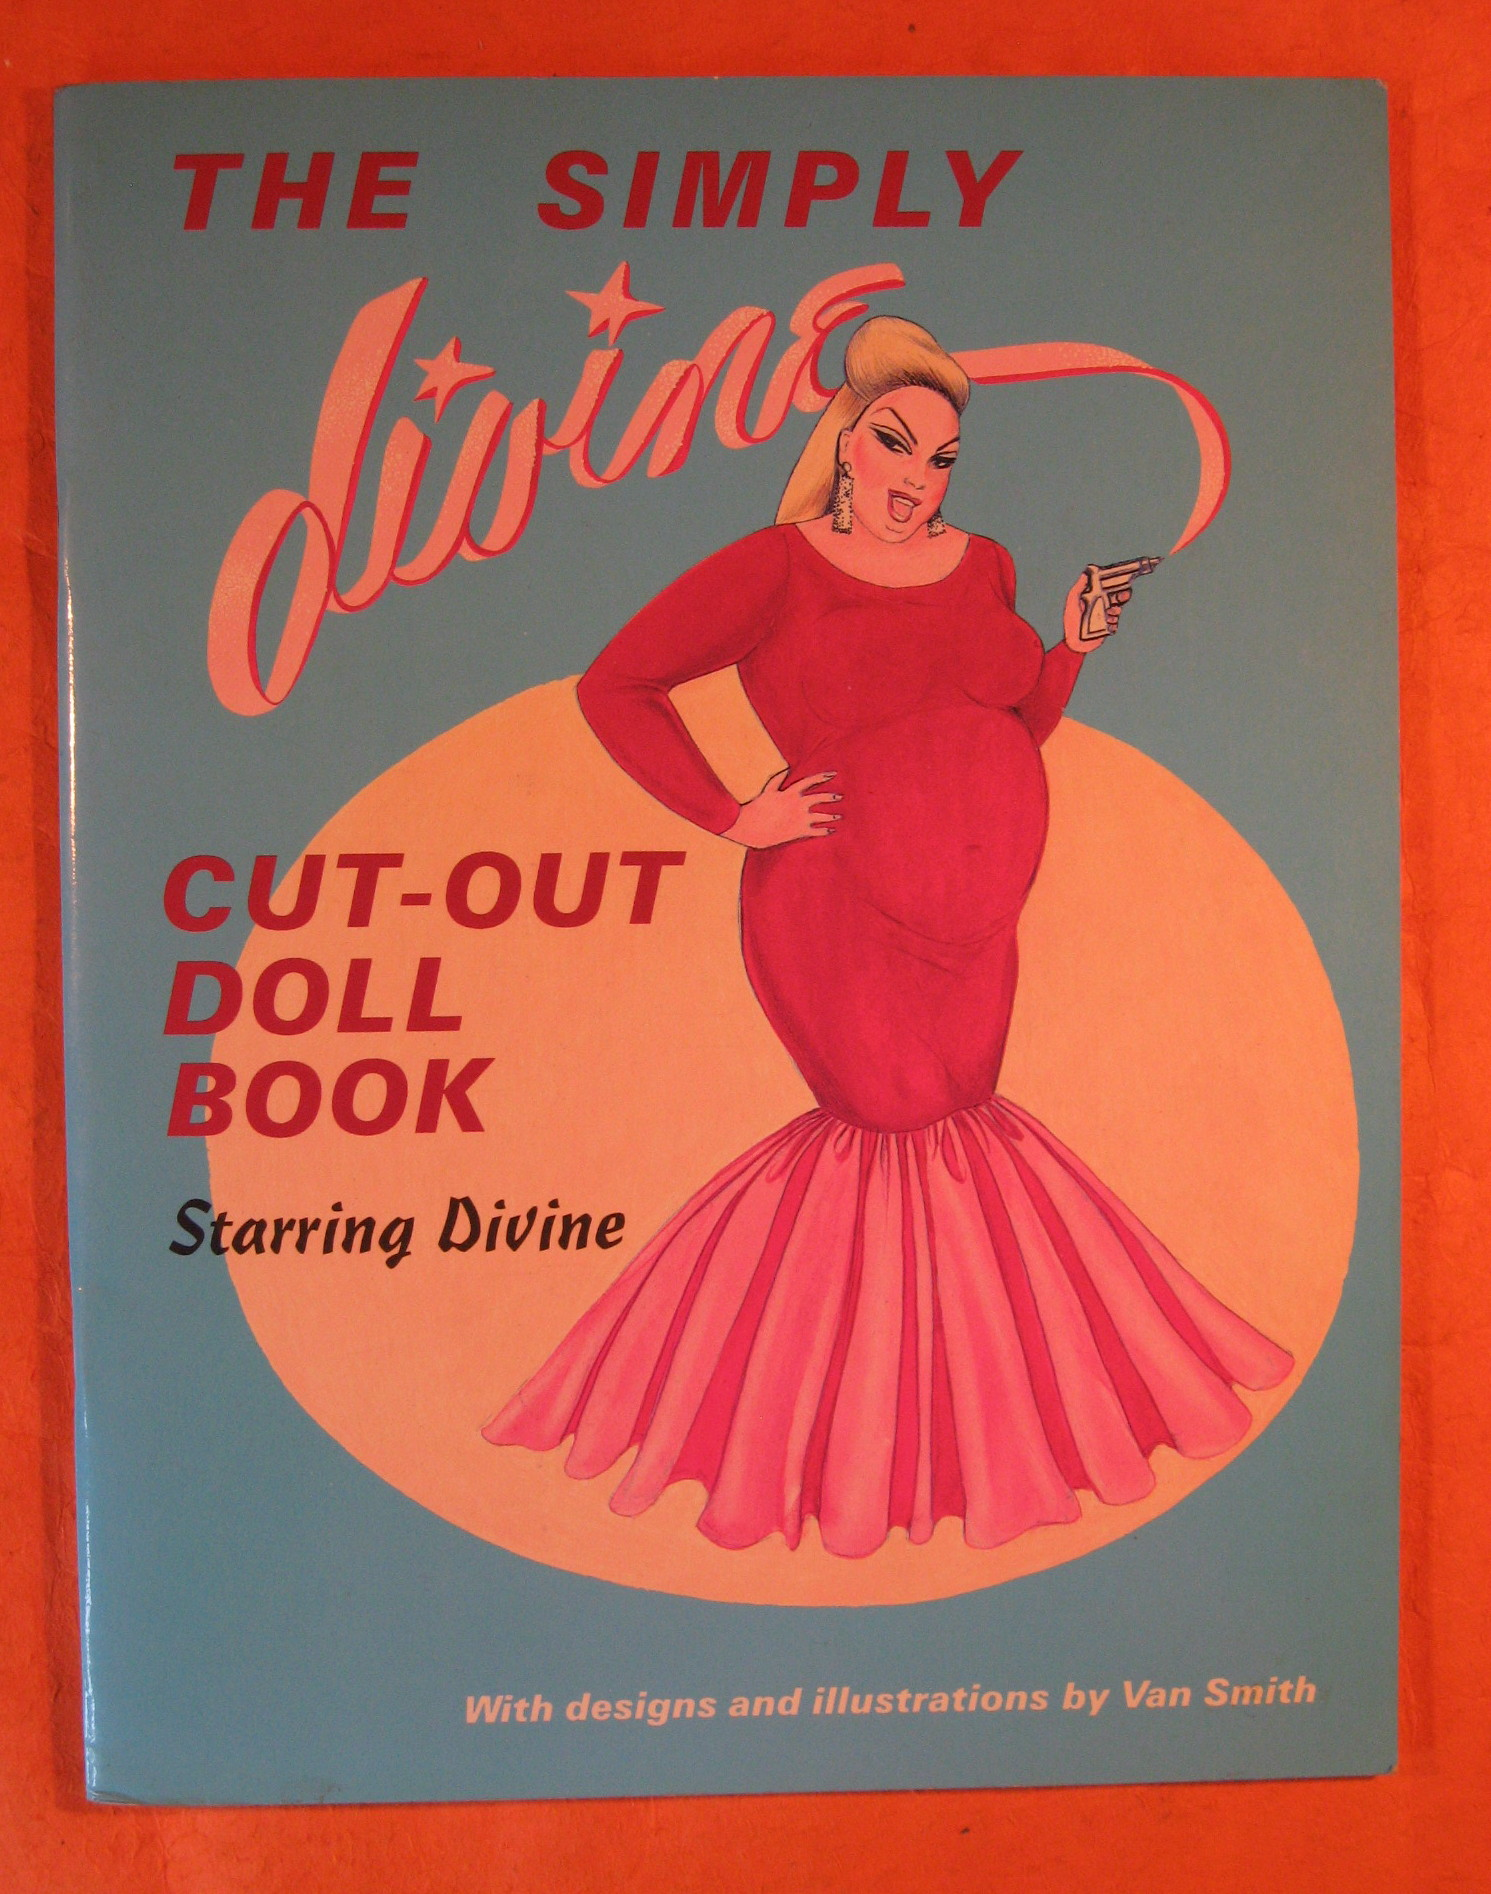 Simply Divine: Cut-Out Doll Book Starring Divine, The